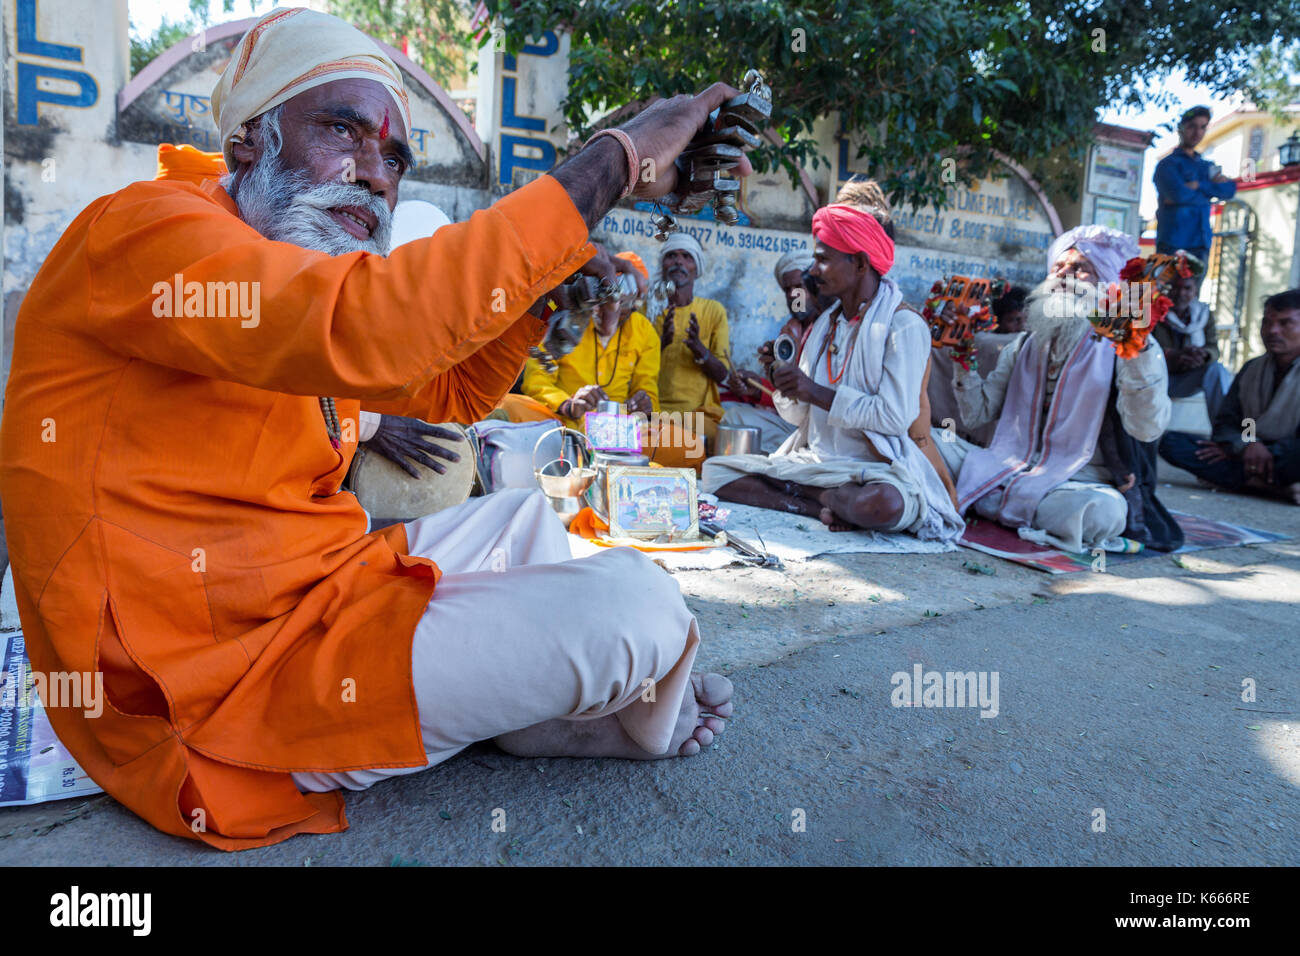 Sadhus gathered to sing and play music, Pushkar, Rajasthan, India - Stock Image